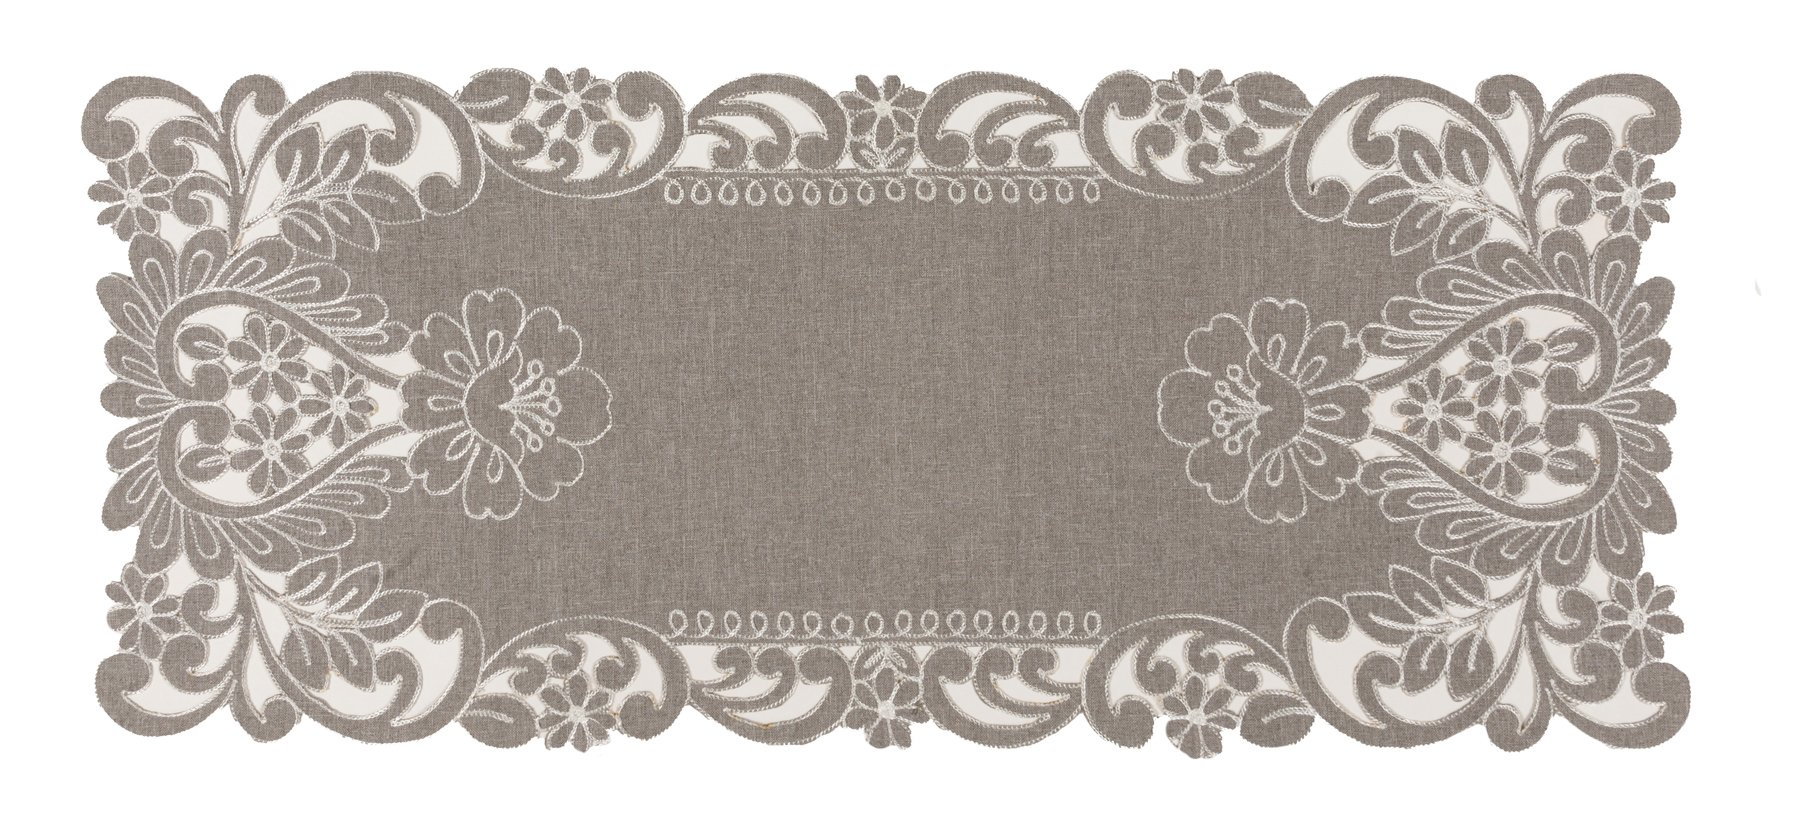 Xia Home Fashions XD183491634Grey Floral Embroidered Cutwork Table Runner, 16 by 36'' by Xia Home Fashions